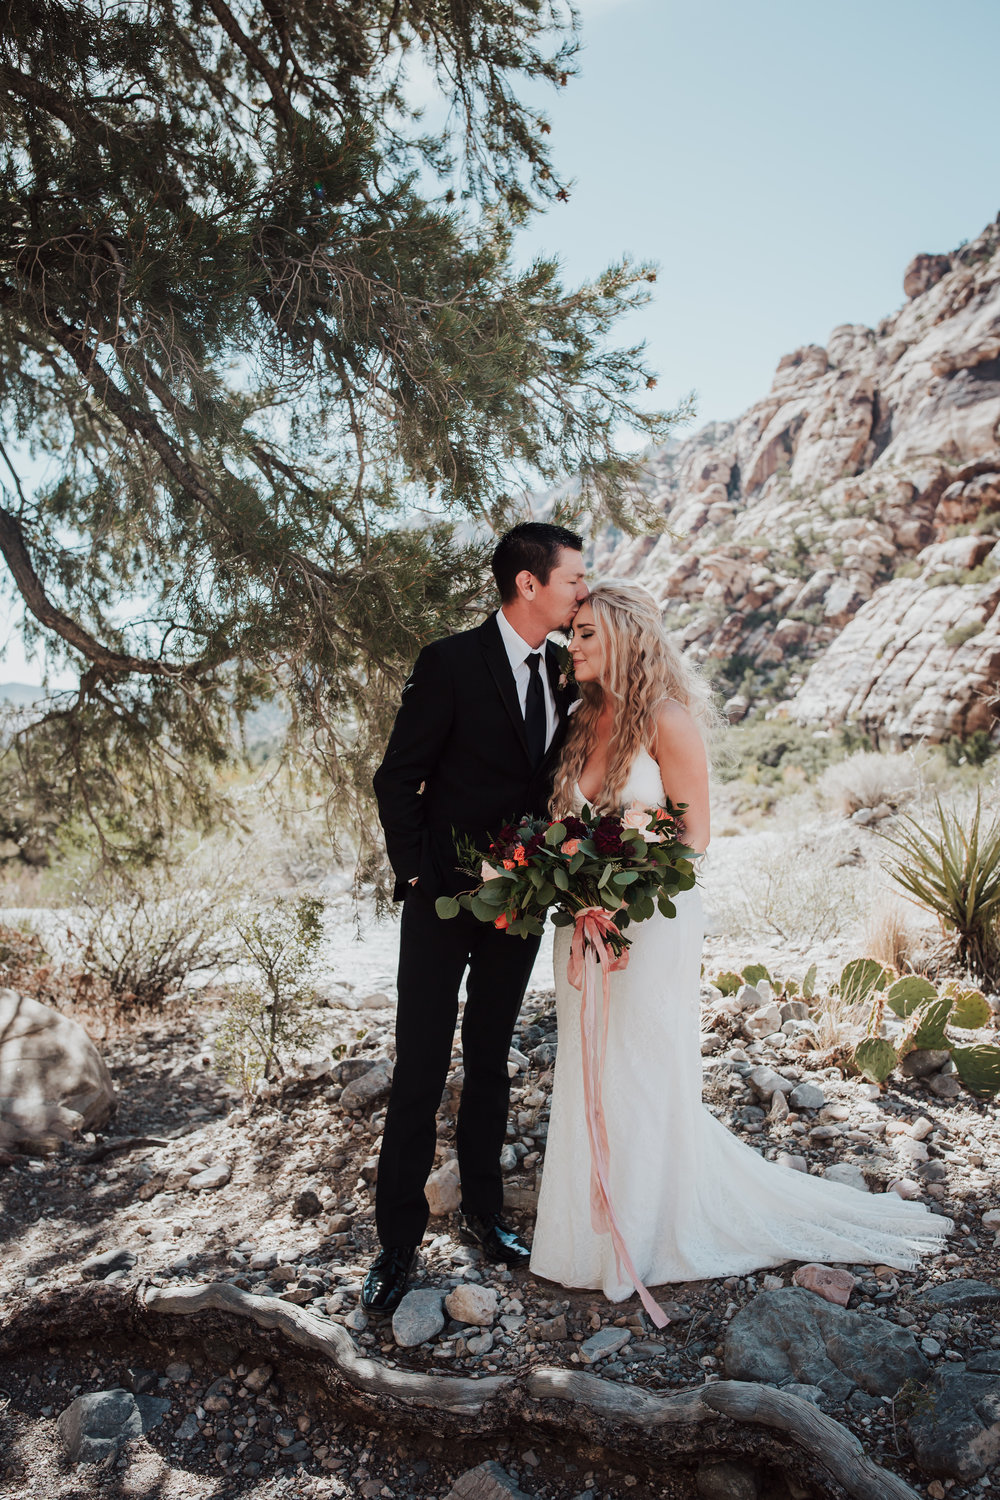 Rustic Bloom Photography | Bride + Groom Desert Elopement